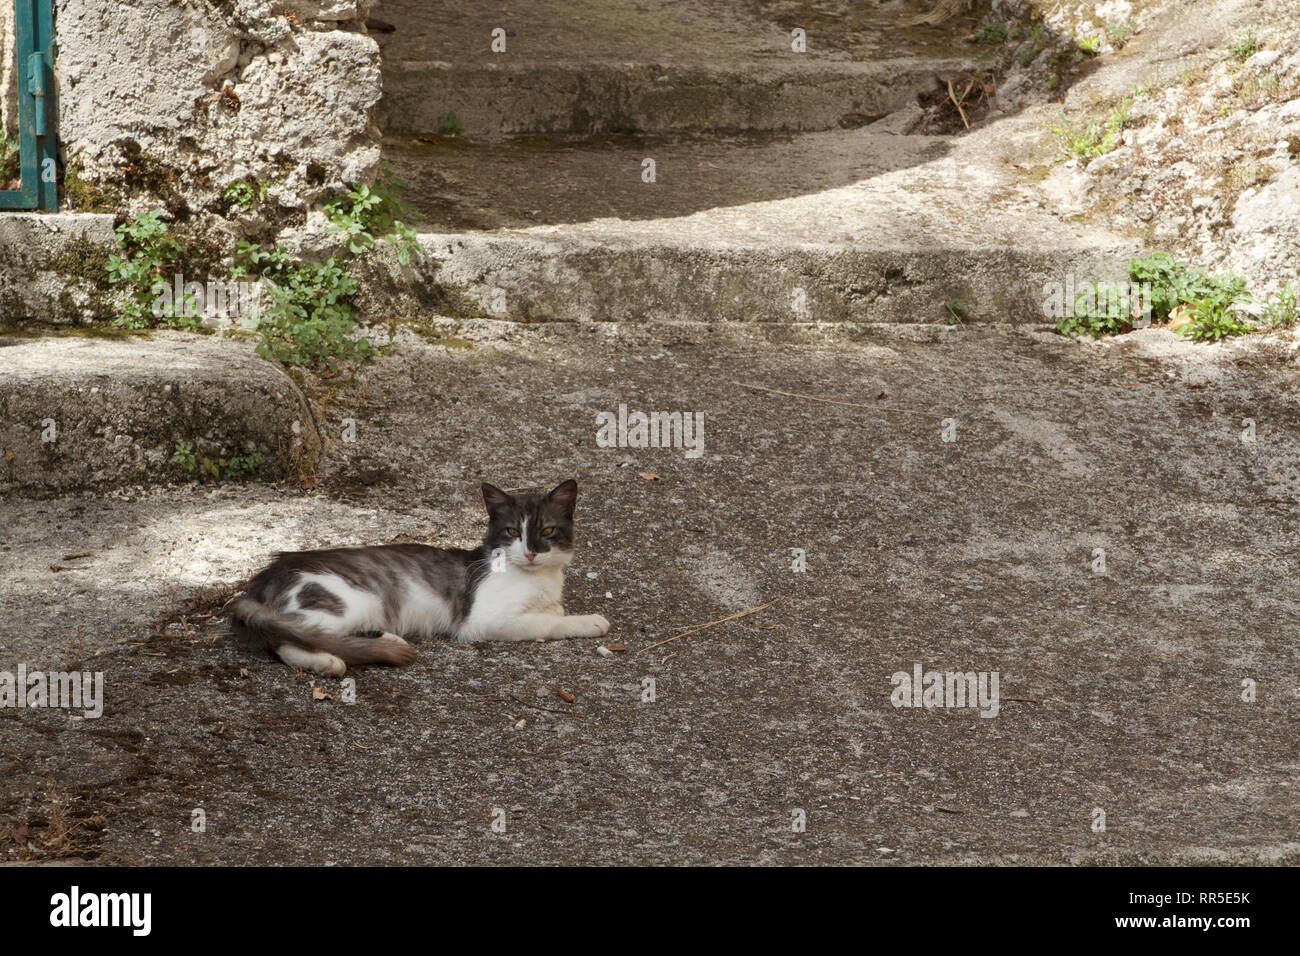 Alvito-Gray and white cat resting on the steps - Stock Image